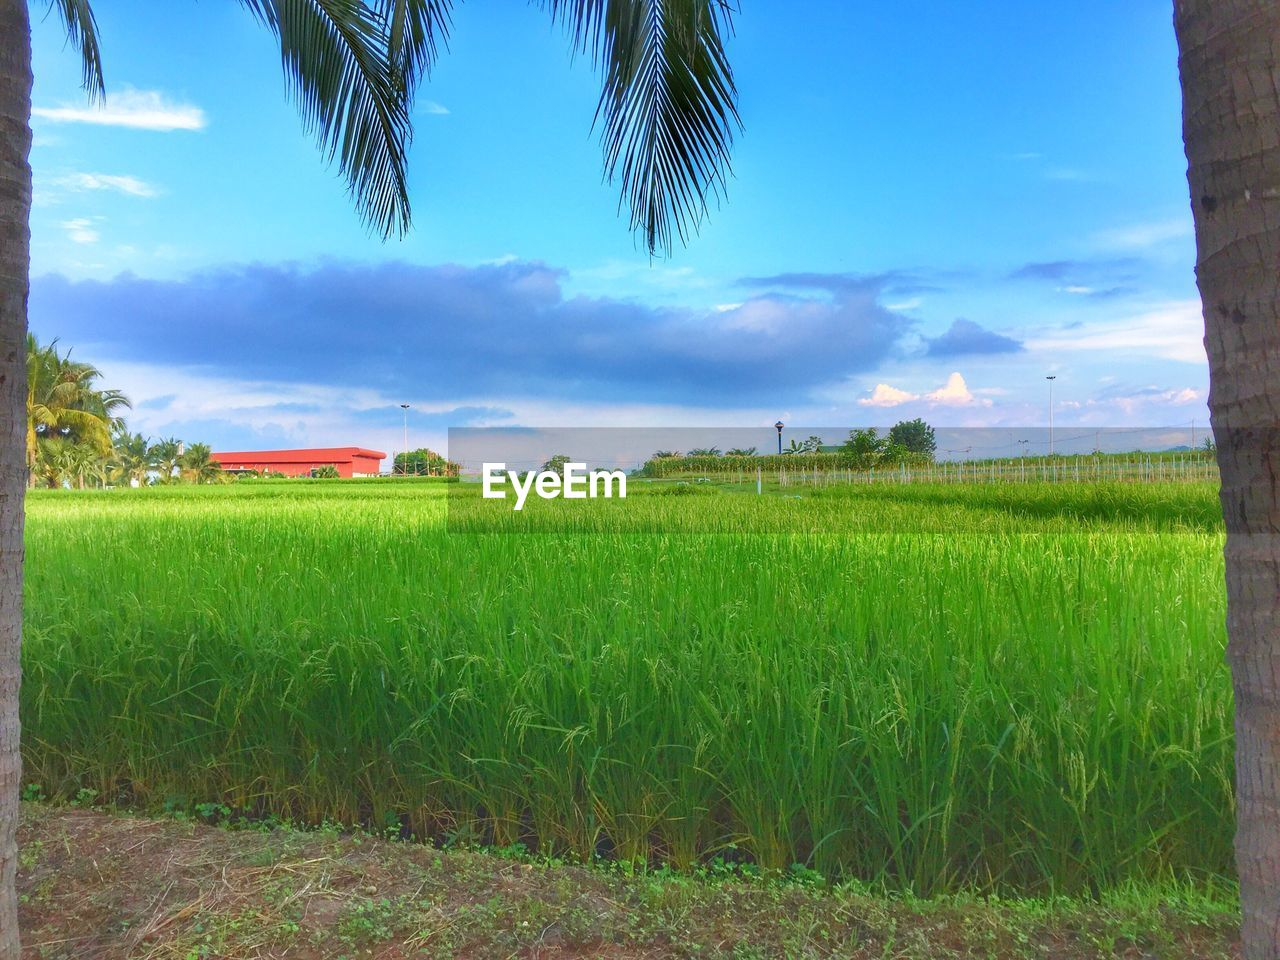 field, agriculture, tranquil scene, sky, growth, tranquility, nature, beauty in nature, scenics, farm, grass, landscape, green color, rural scene, tree, crop, no people, cloud - sky, cultivated land, idyllic, day, outdoors, plant, cereal plant, blue, wheat, rice paddy